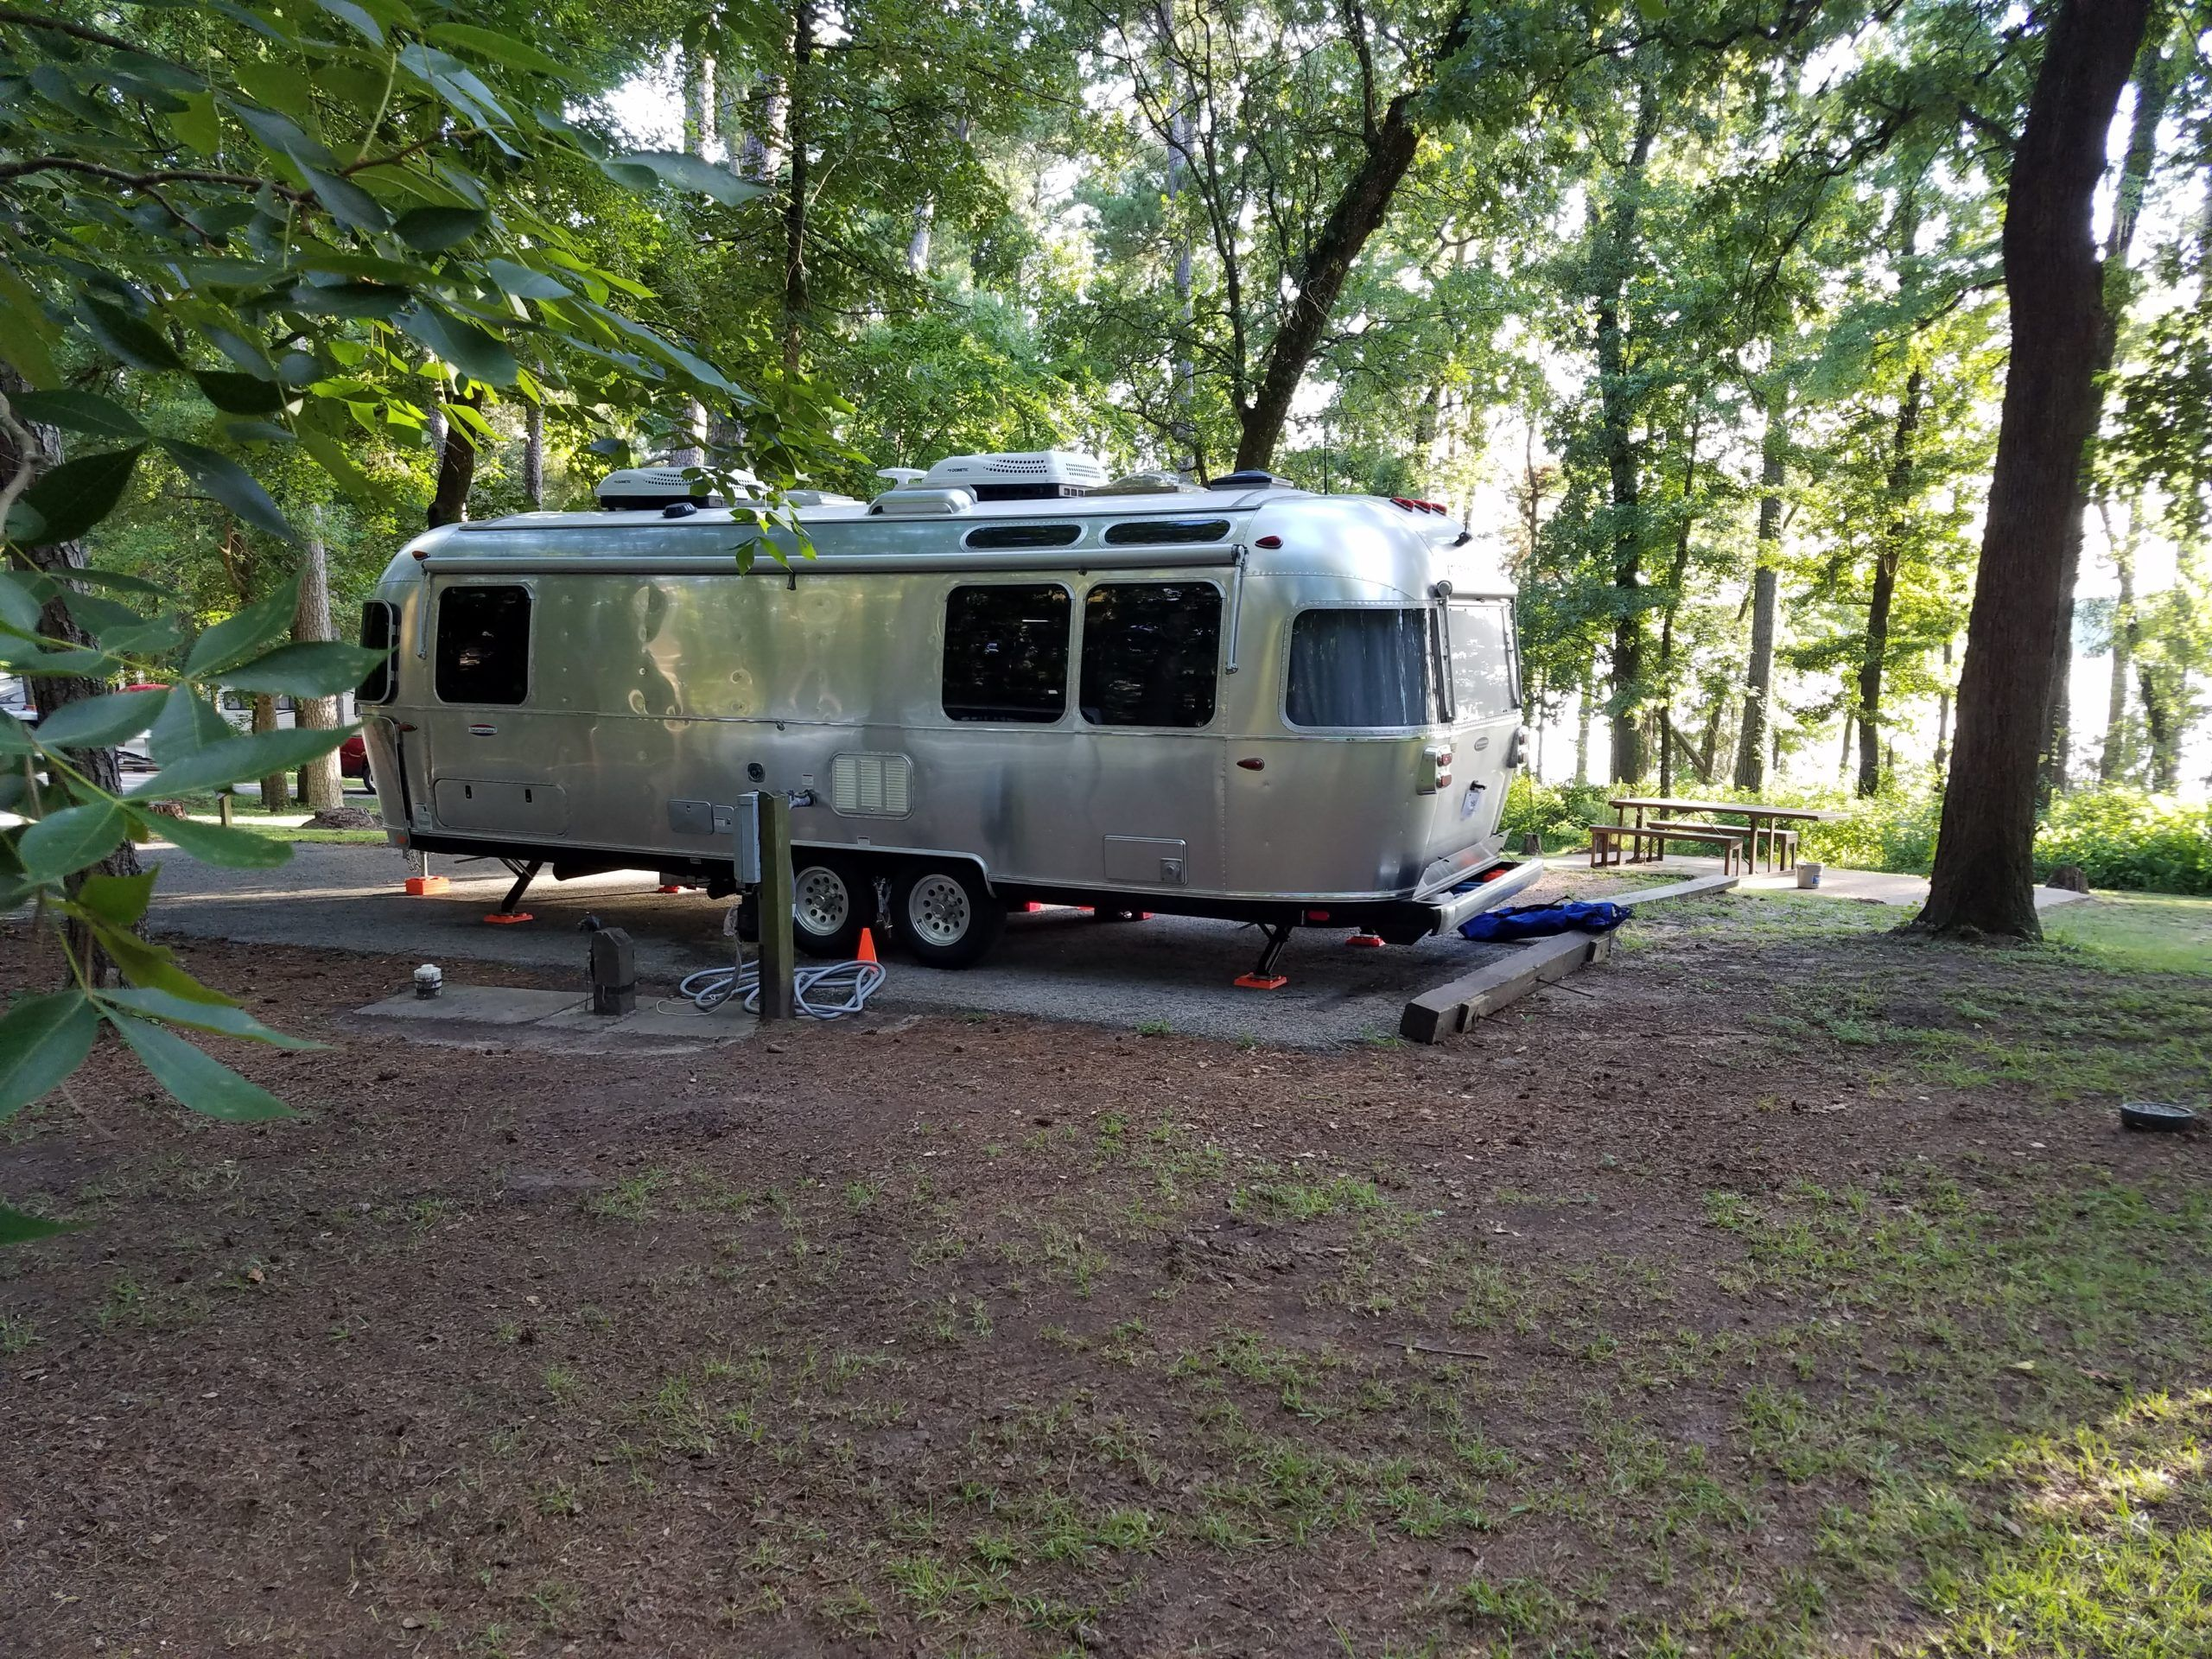 2019 27ft International Serenity For Sale In The Woodlands For Sale 2019 Airstream International S Airstream Trailers For Sale Airstream For Sale Airstream